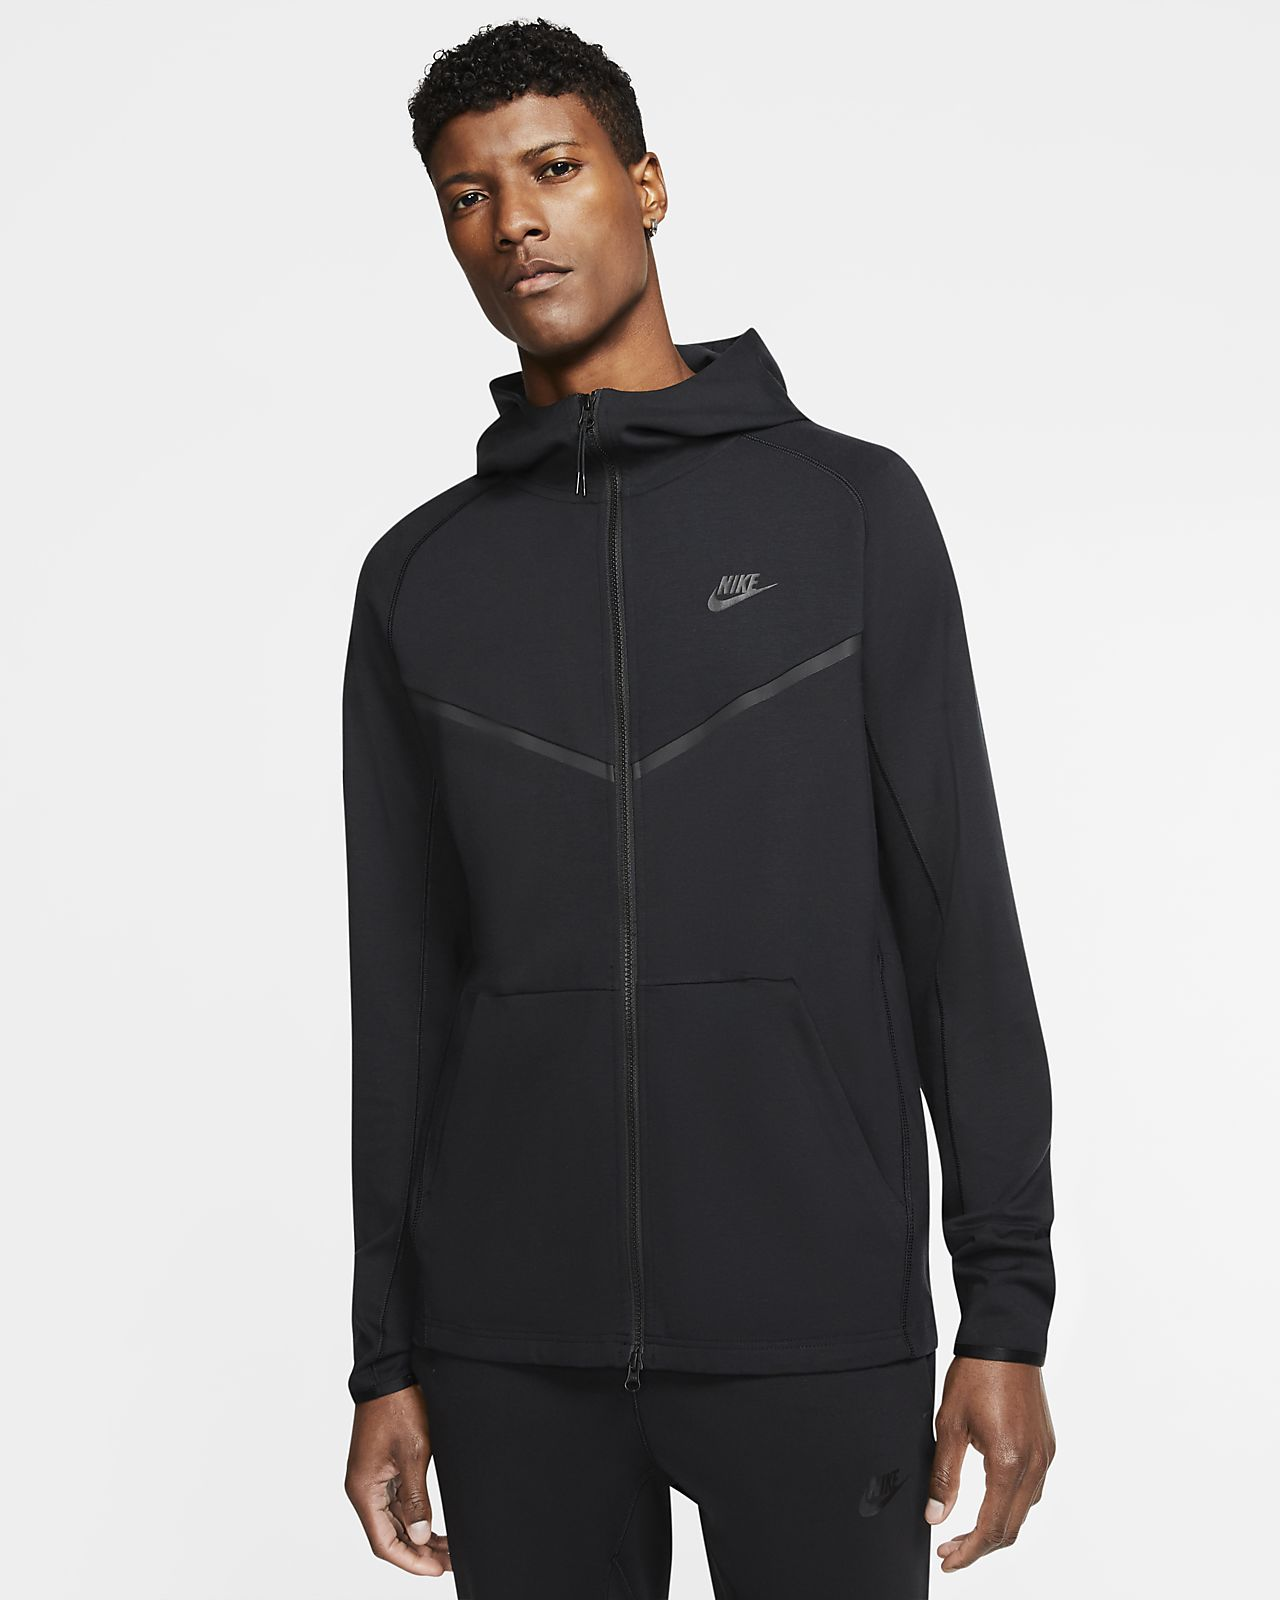 Nike Nike Jacket Men's Jacket 2019 New Sportswear Cotton